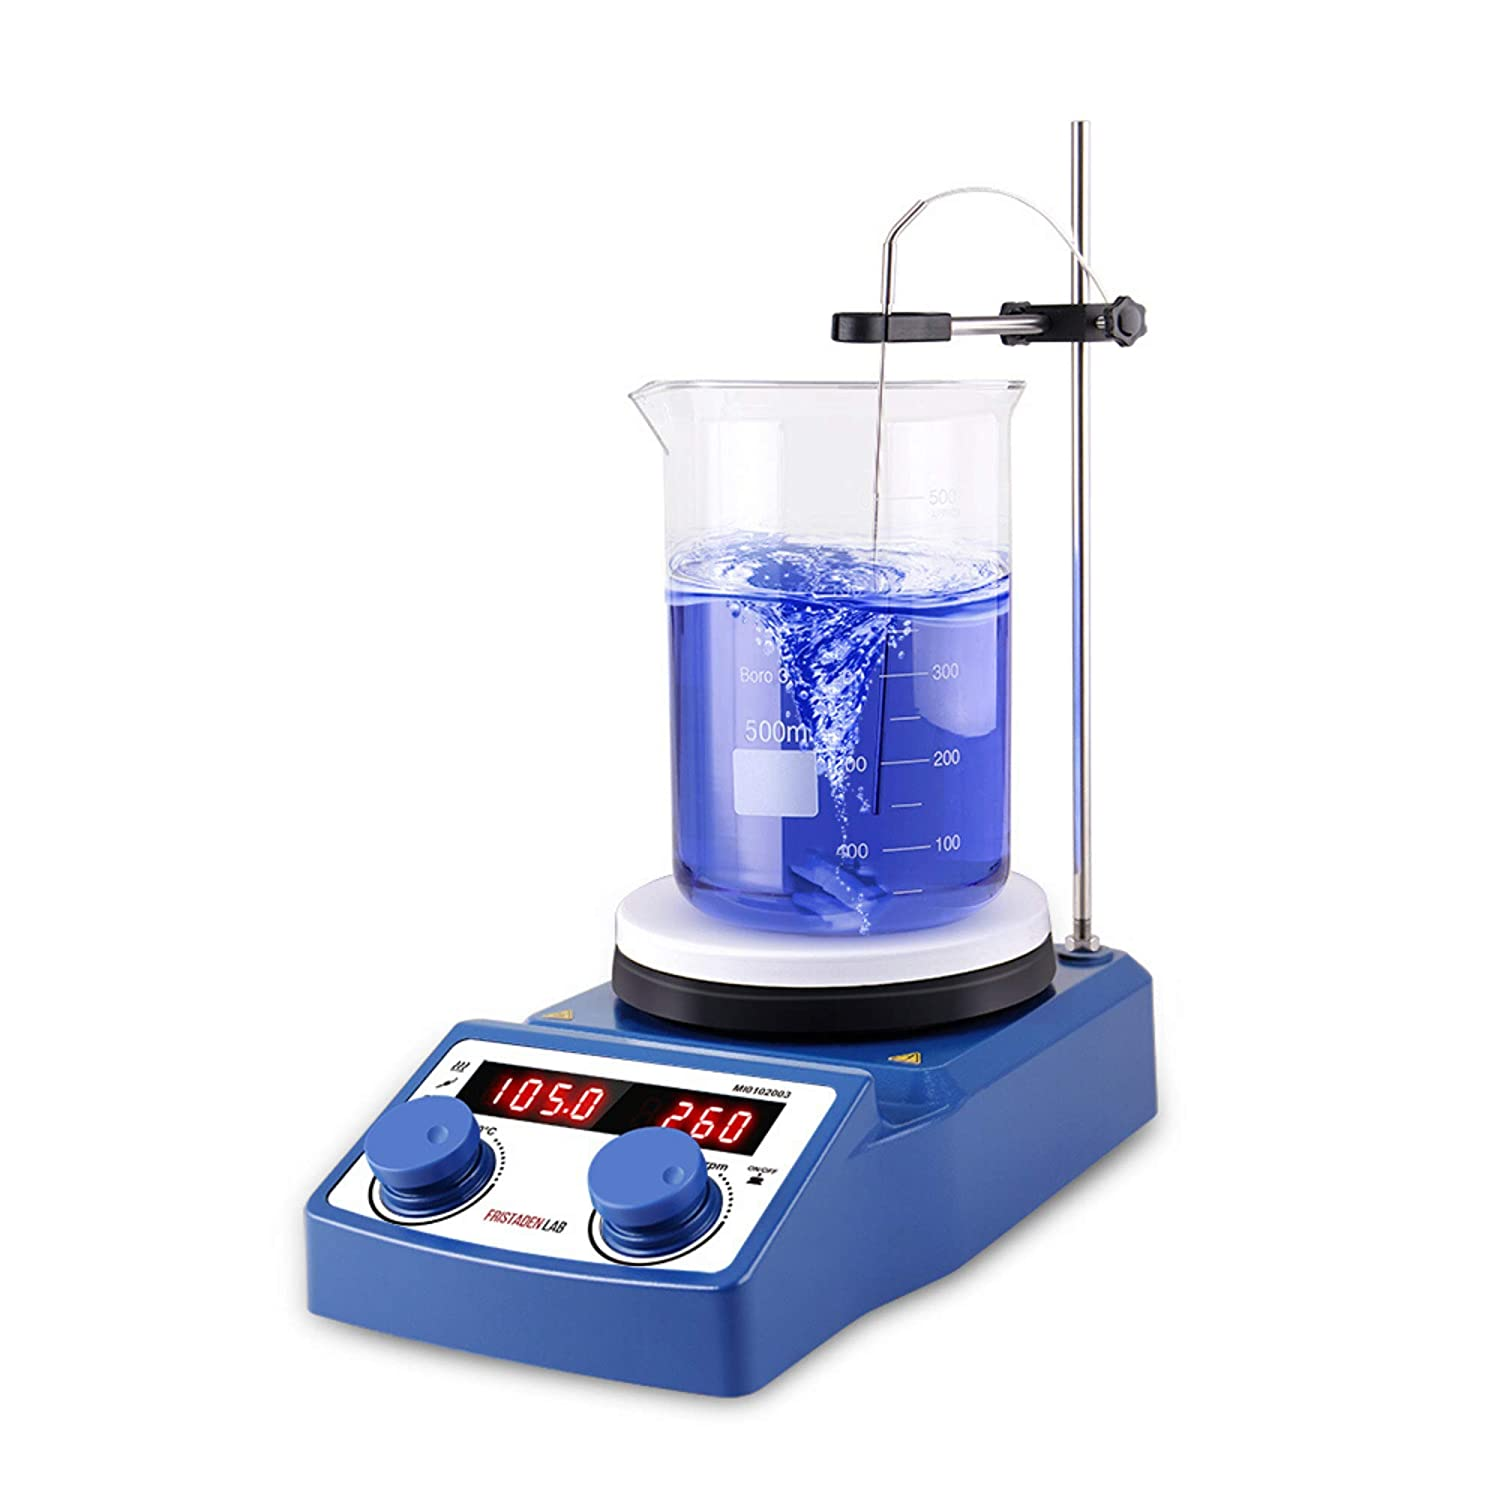 American Fristaden Lab Digital Magnetic Hot Plate Stirrer | LED Display with Temperature | Large 5L Ceramic Hot Plate with Magnetic Stirrer | 100-1500RPM | Temperature Probe | 2YR Warranty